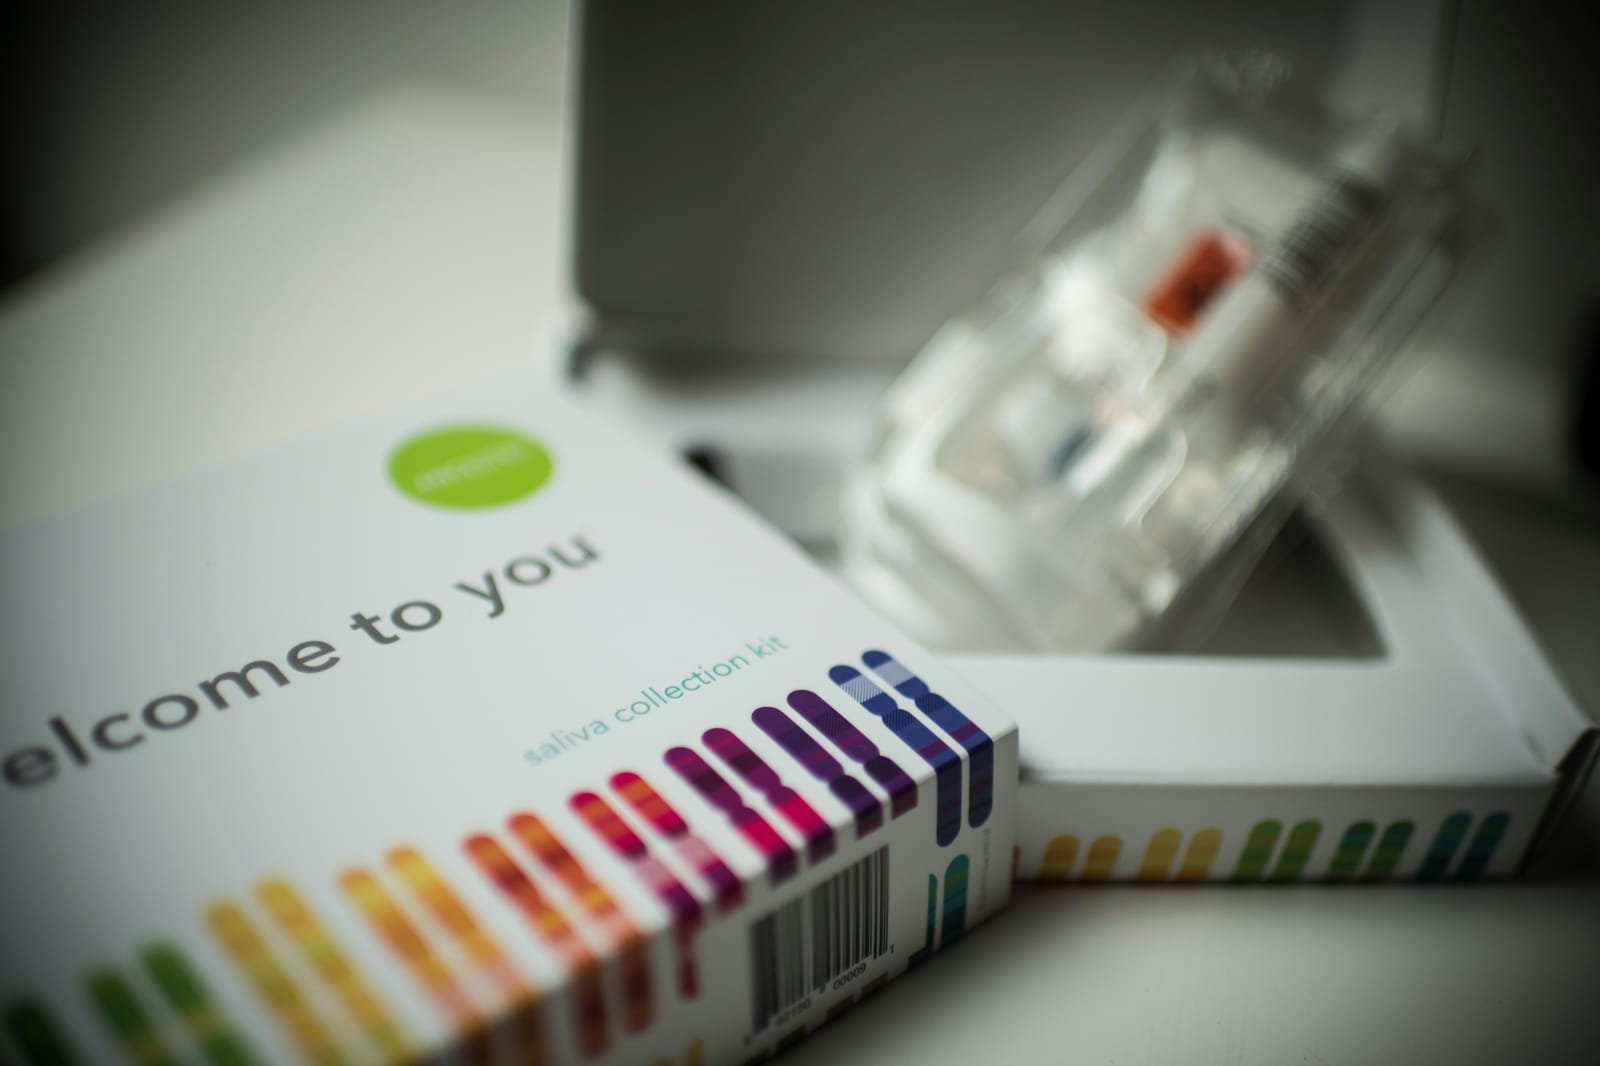 23andMe's VIP service includes a one-on-one chat to explain your DNA